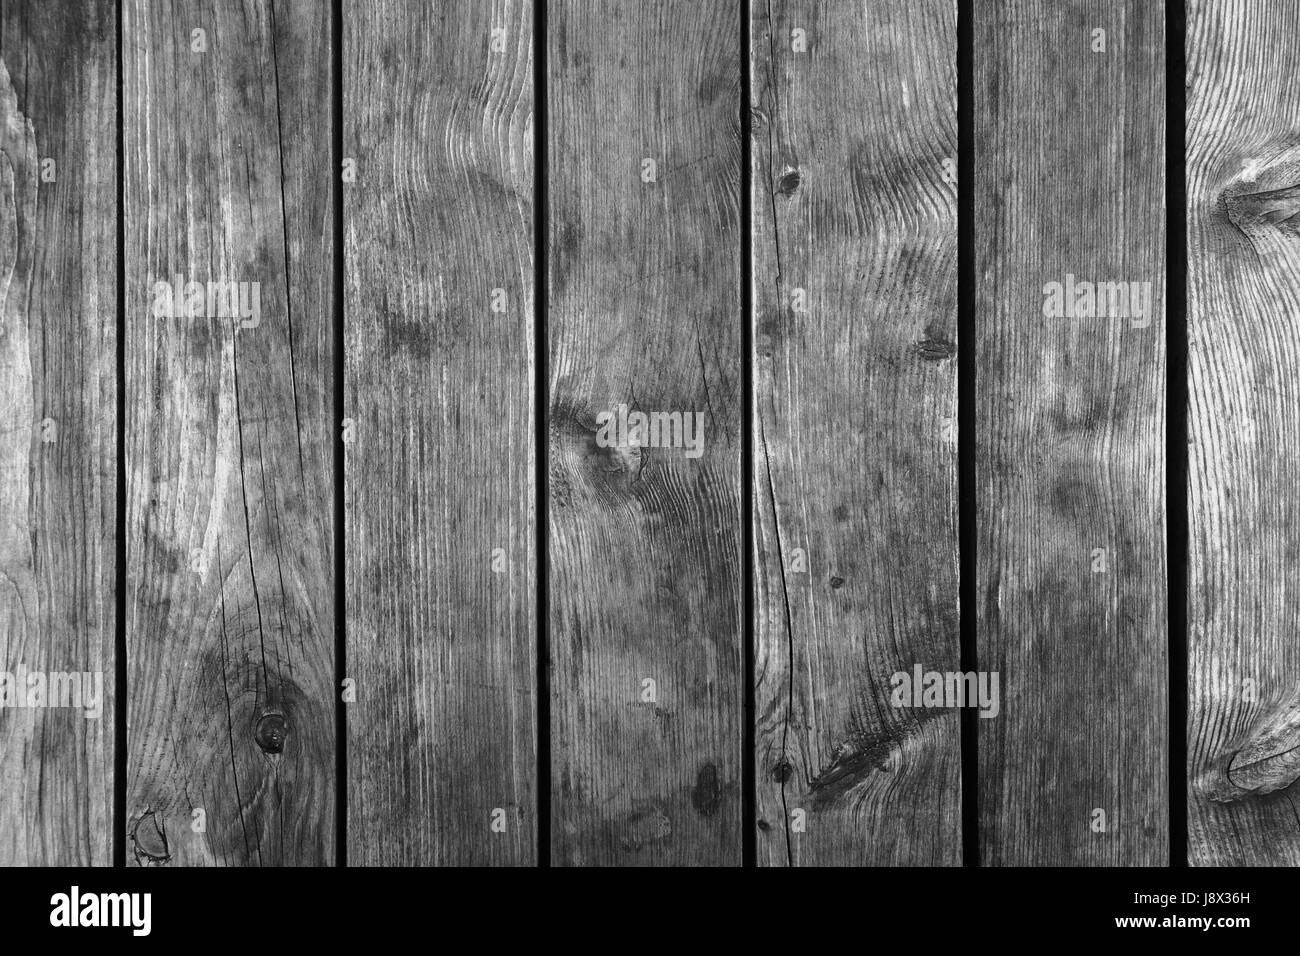 Old dark gray weathered wooden wall, flat background photo texture - Stock Image